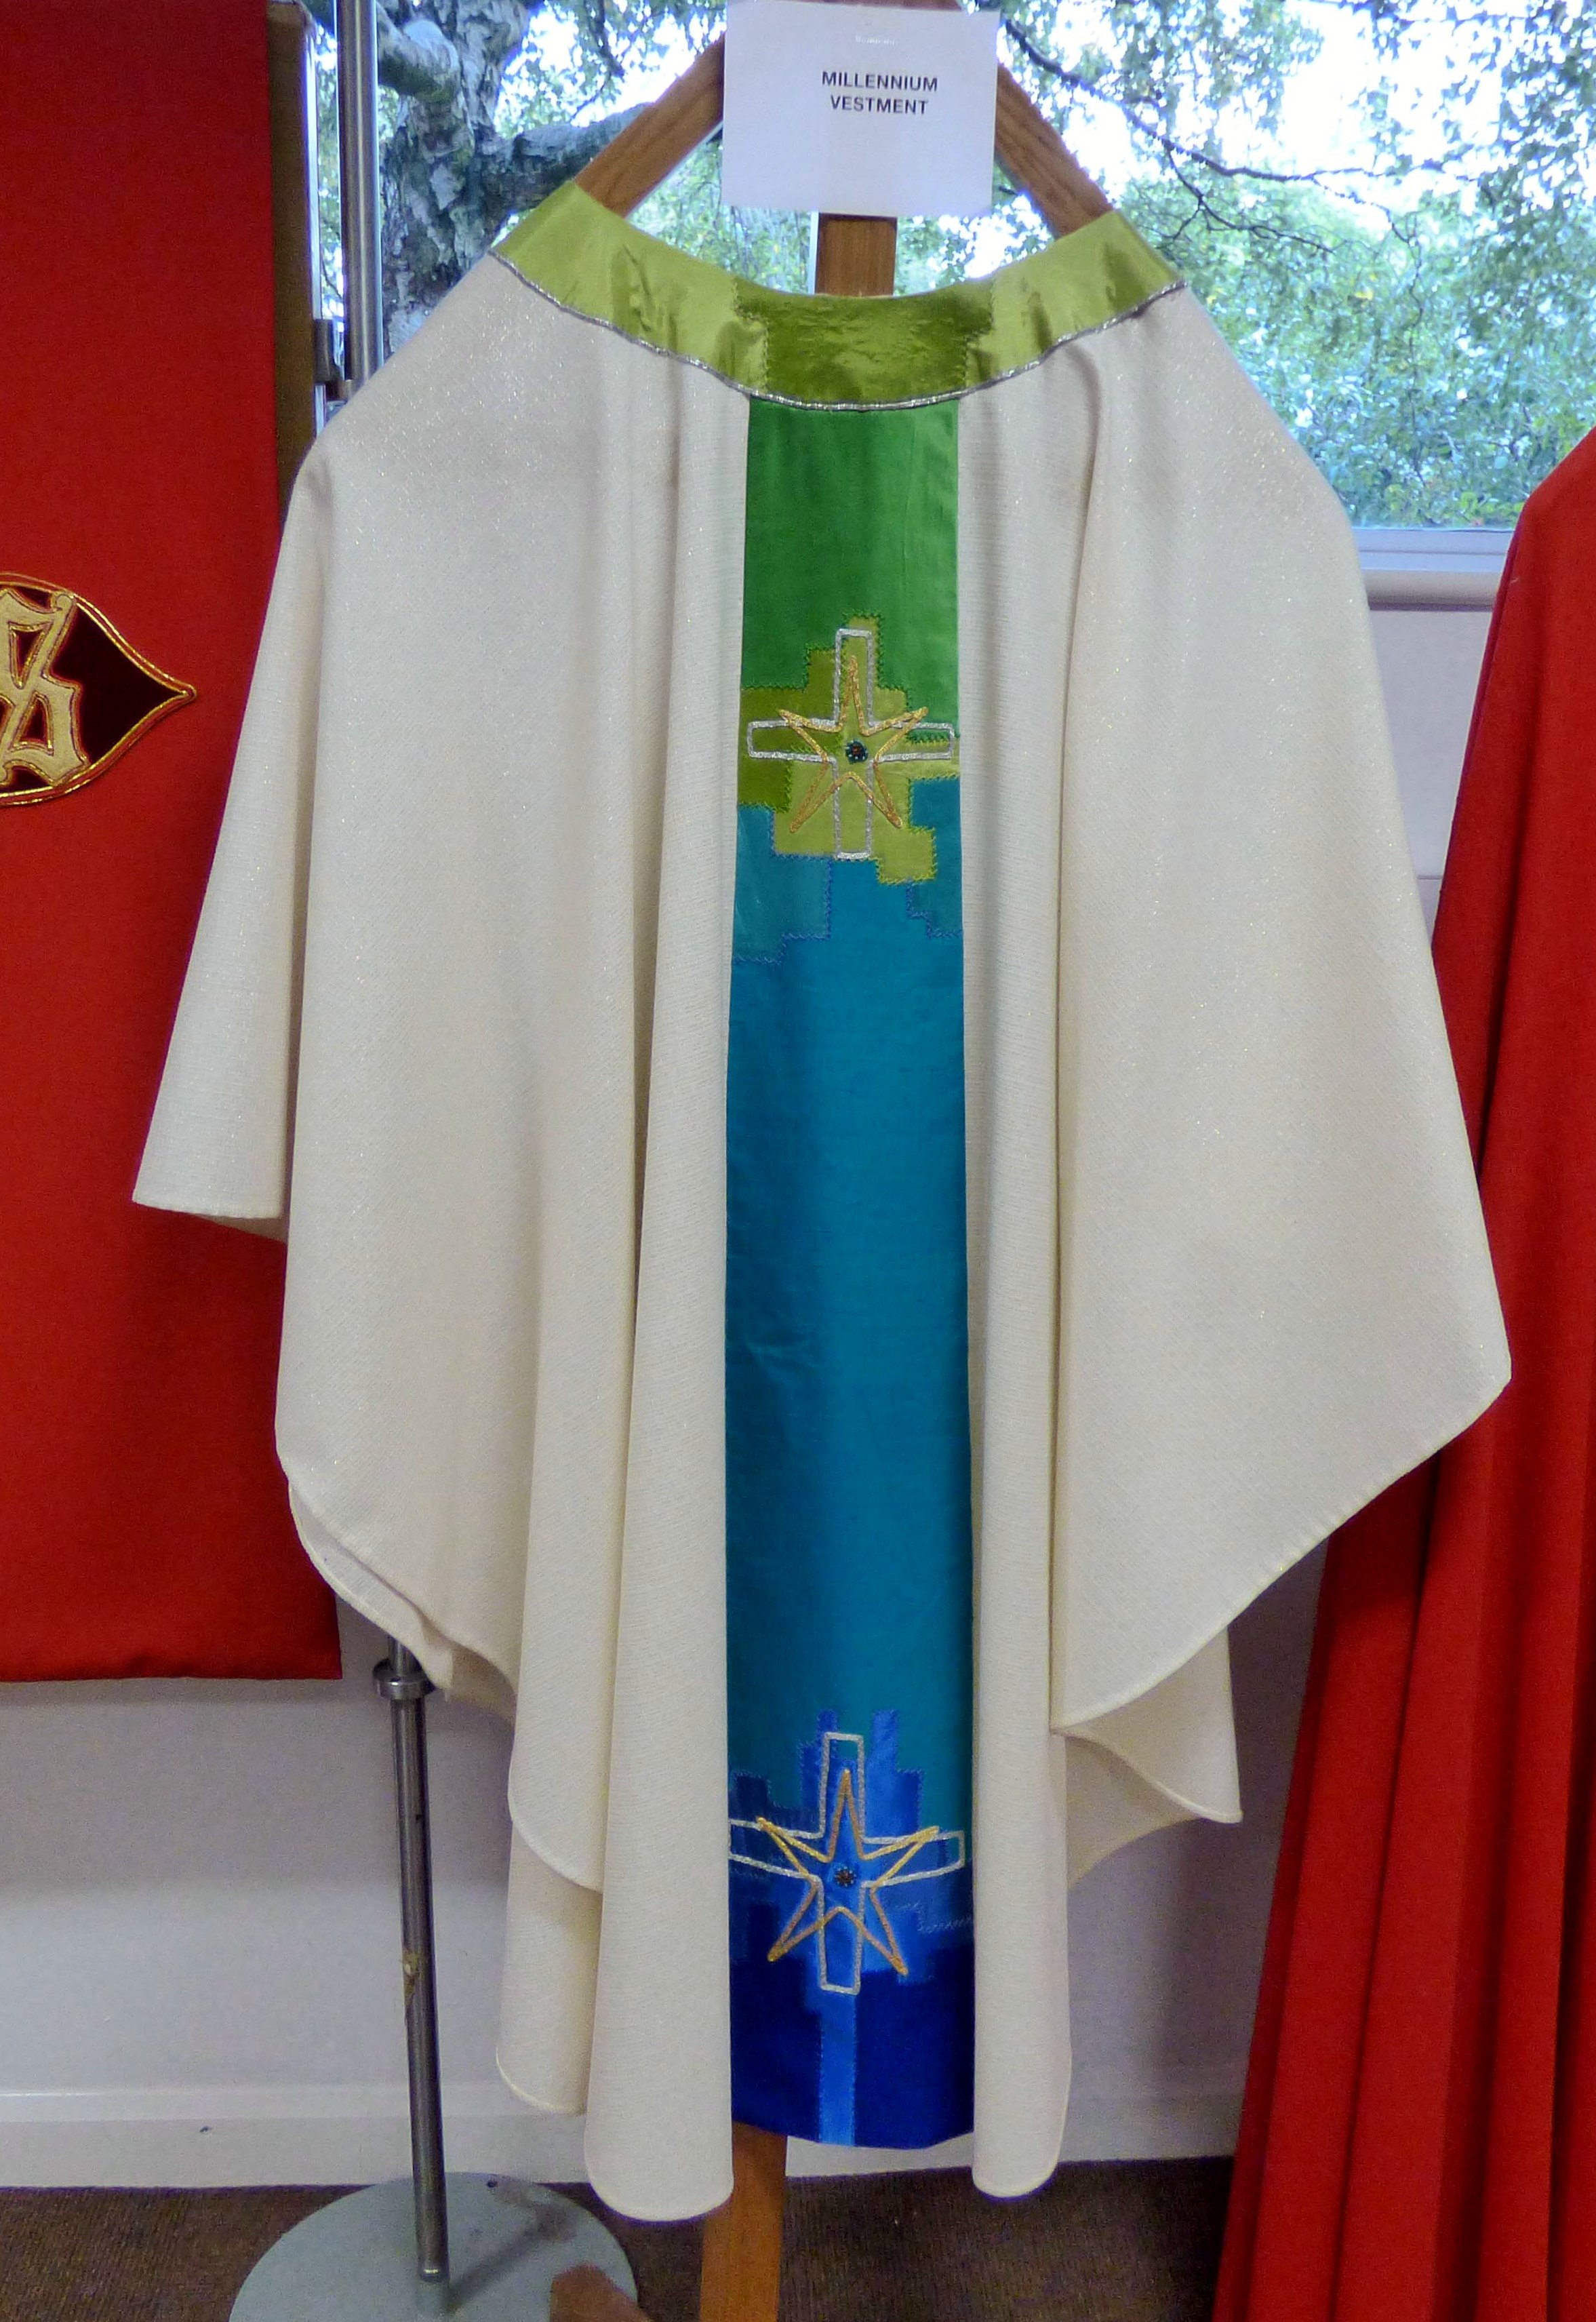 MILLENNIUM VESTMENT at Embroidery Studio open day, Liverpool Metropolitan Cathedral 2017